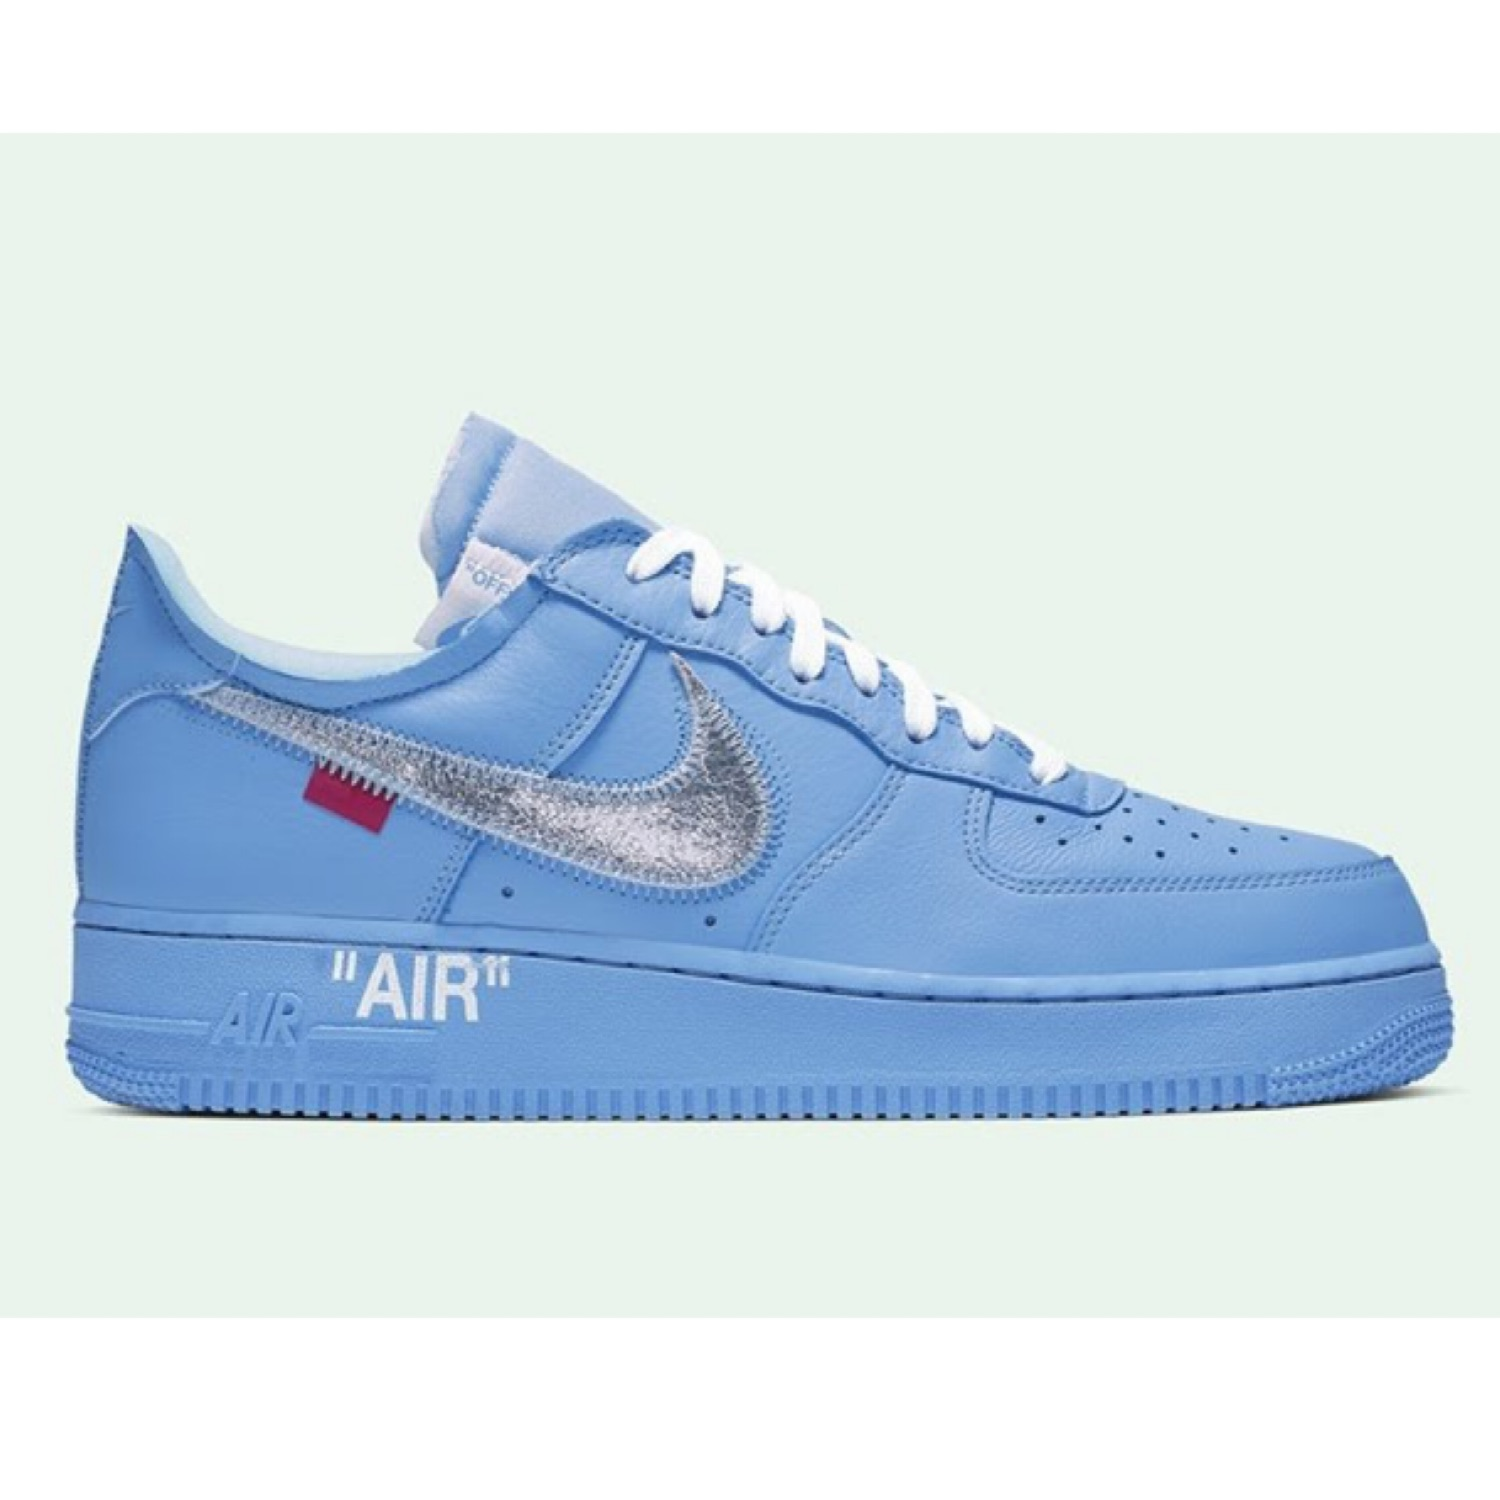 Off-White X Nike Air Force 1 Mca Re-Release Proxy